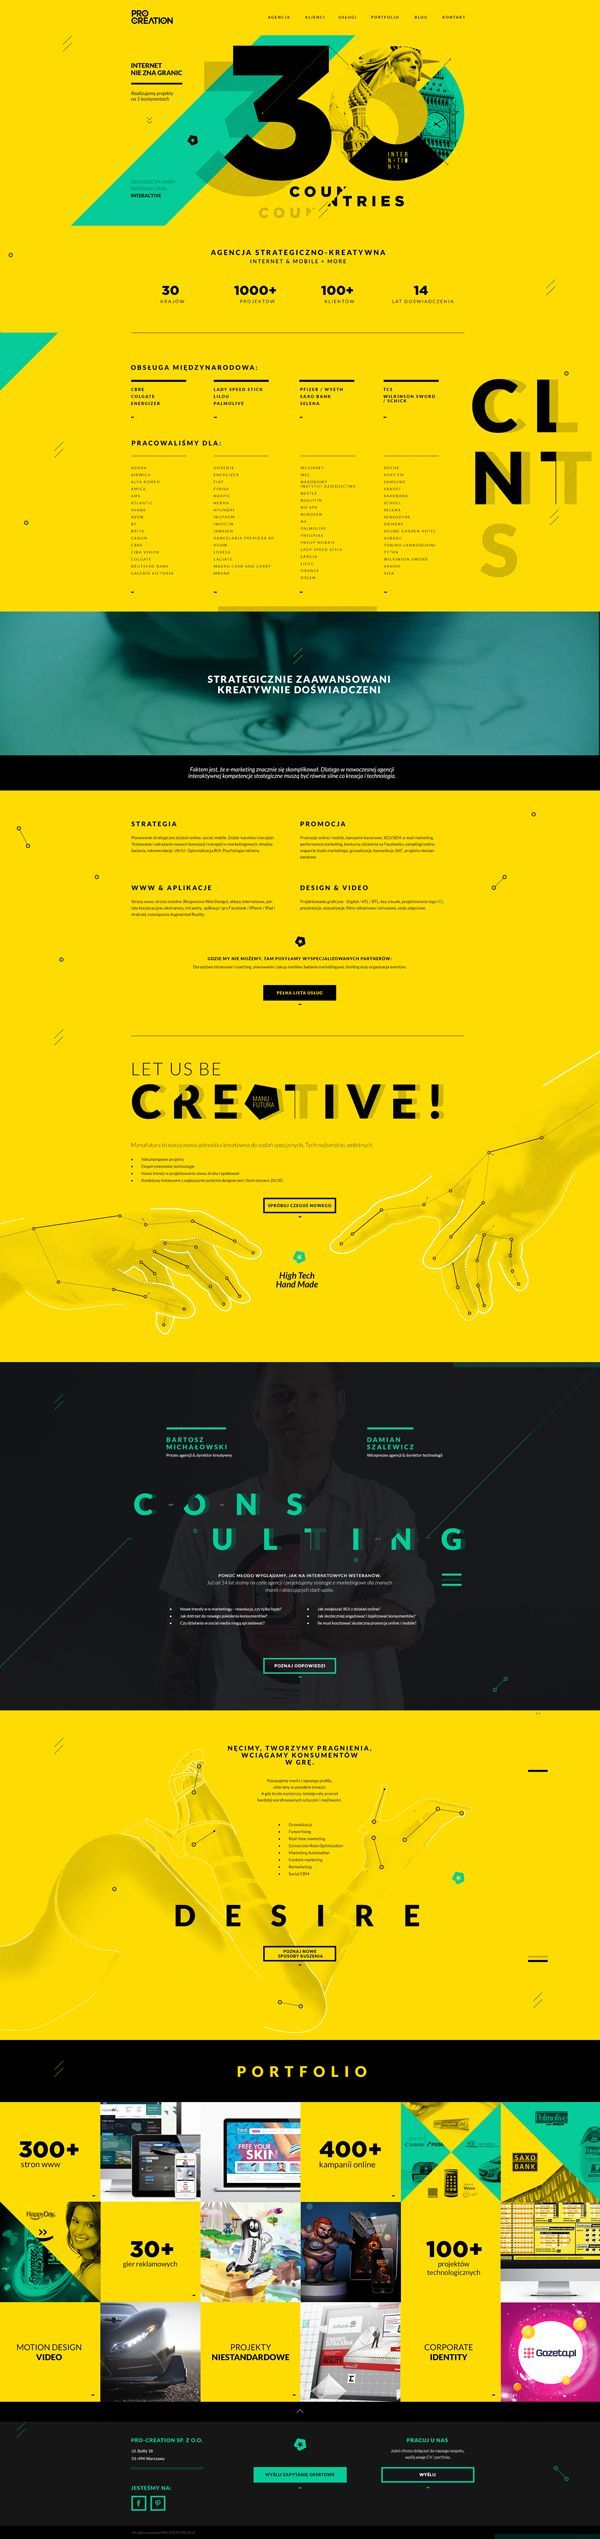 Pro Creation Modern Website Design: